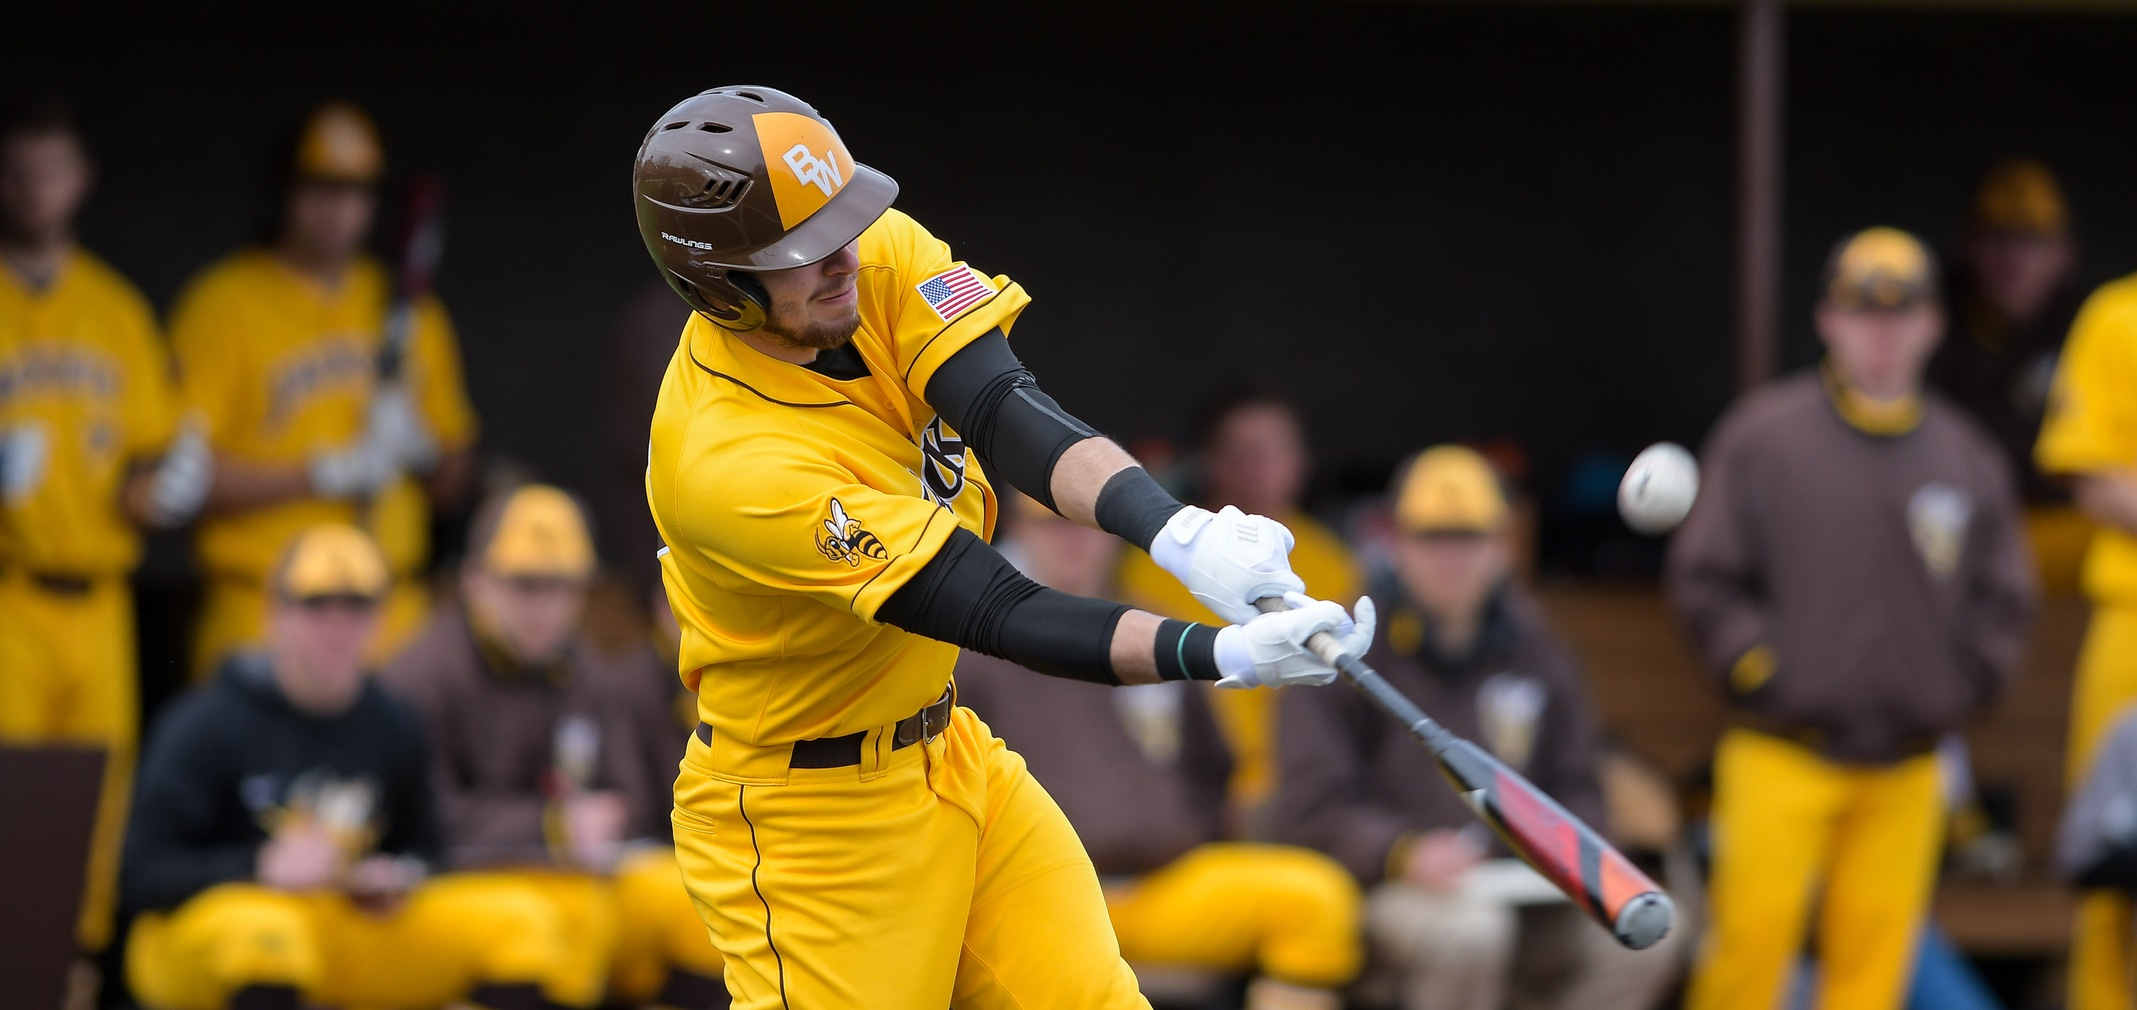 Sophomore third baseman Jacob Bonner had two hits and two RBIs against Denison (Photo courtesy of Jesse Kucewicz)